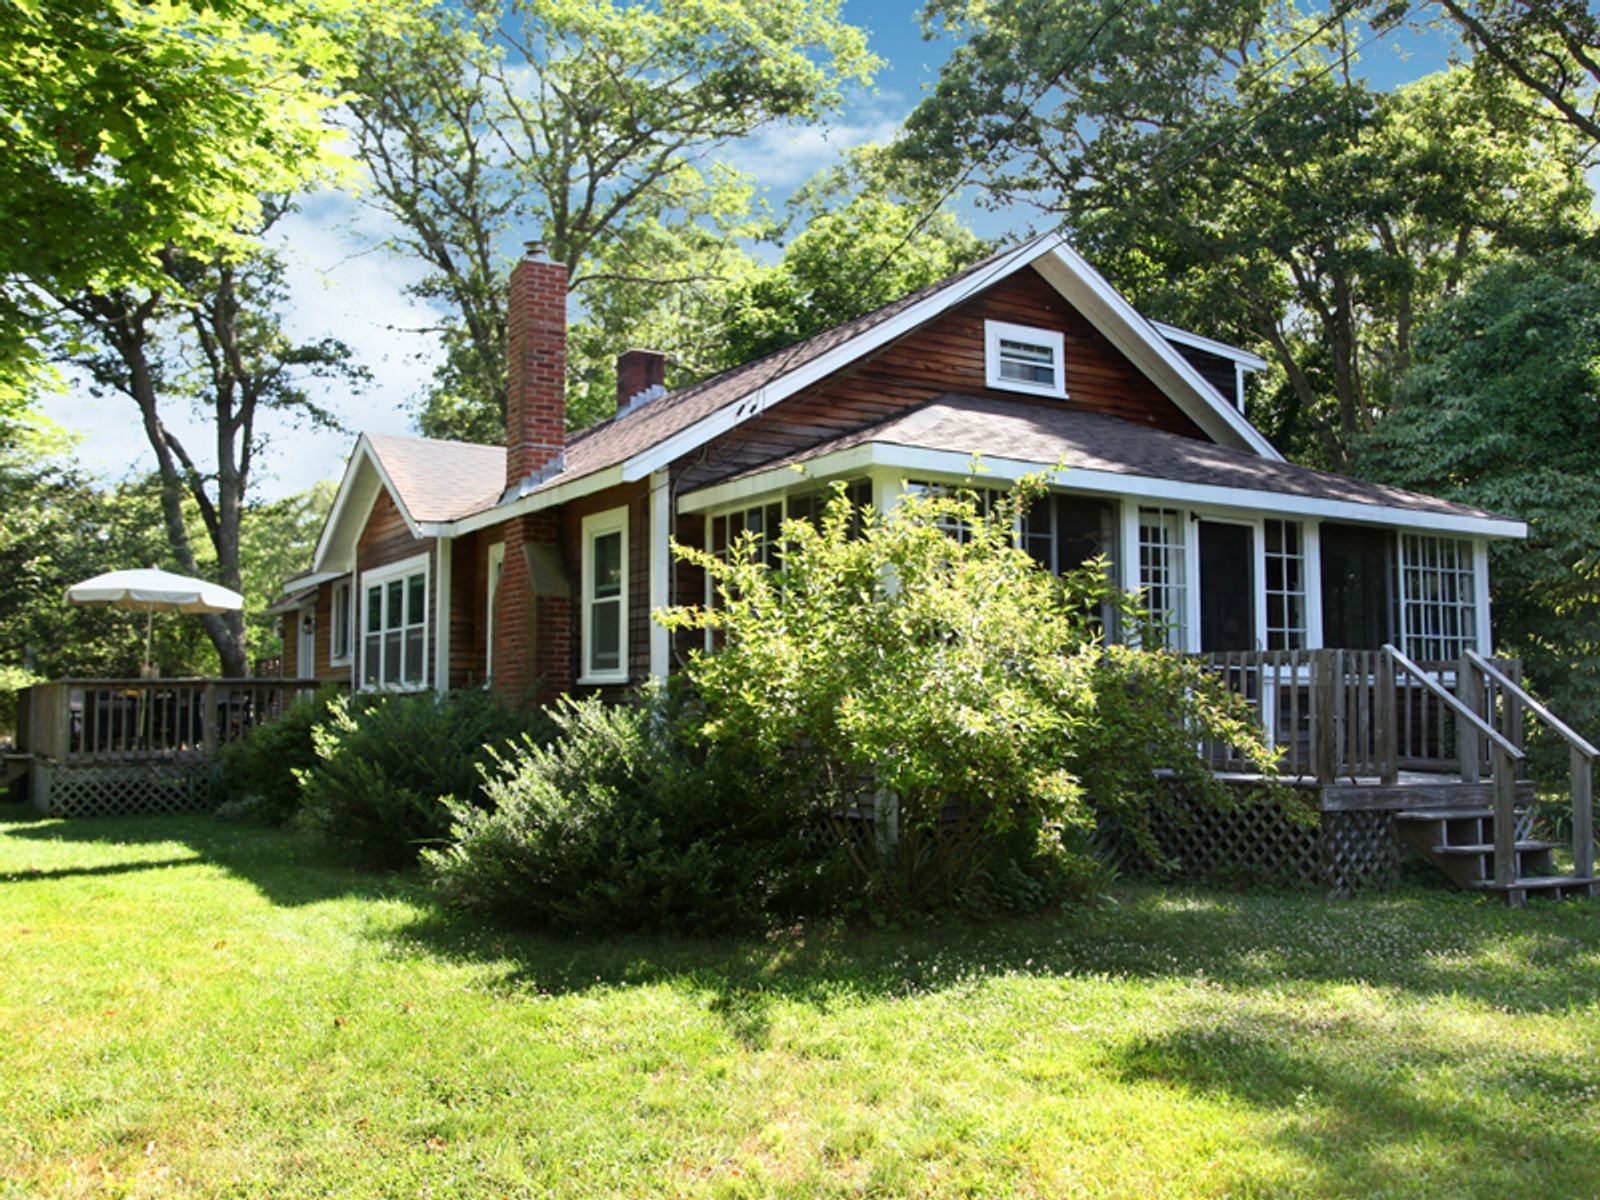 Charming Antique Bungalow, Marstons Mills MA Single Family Home - Cape Cod Real Estate